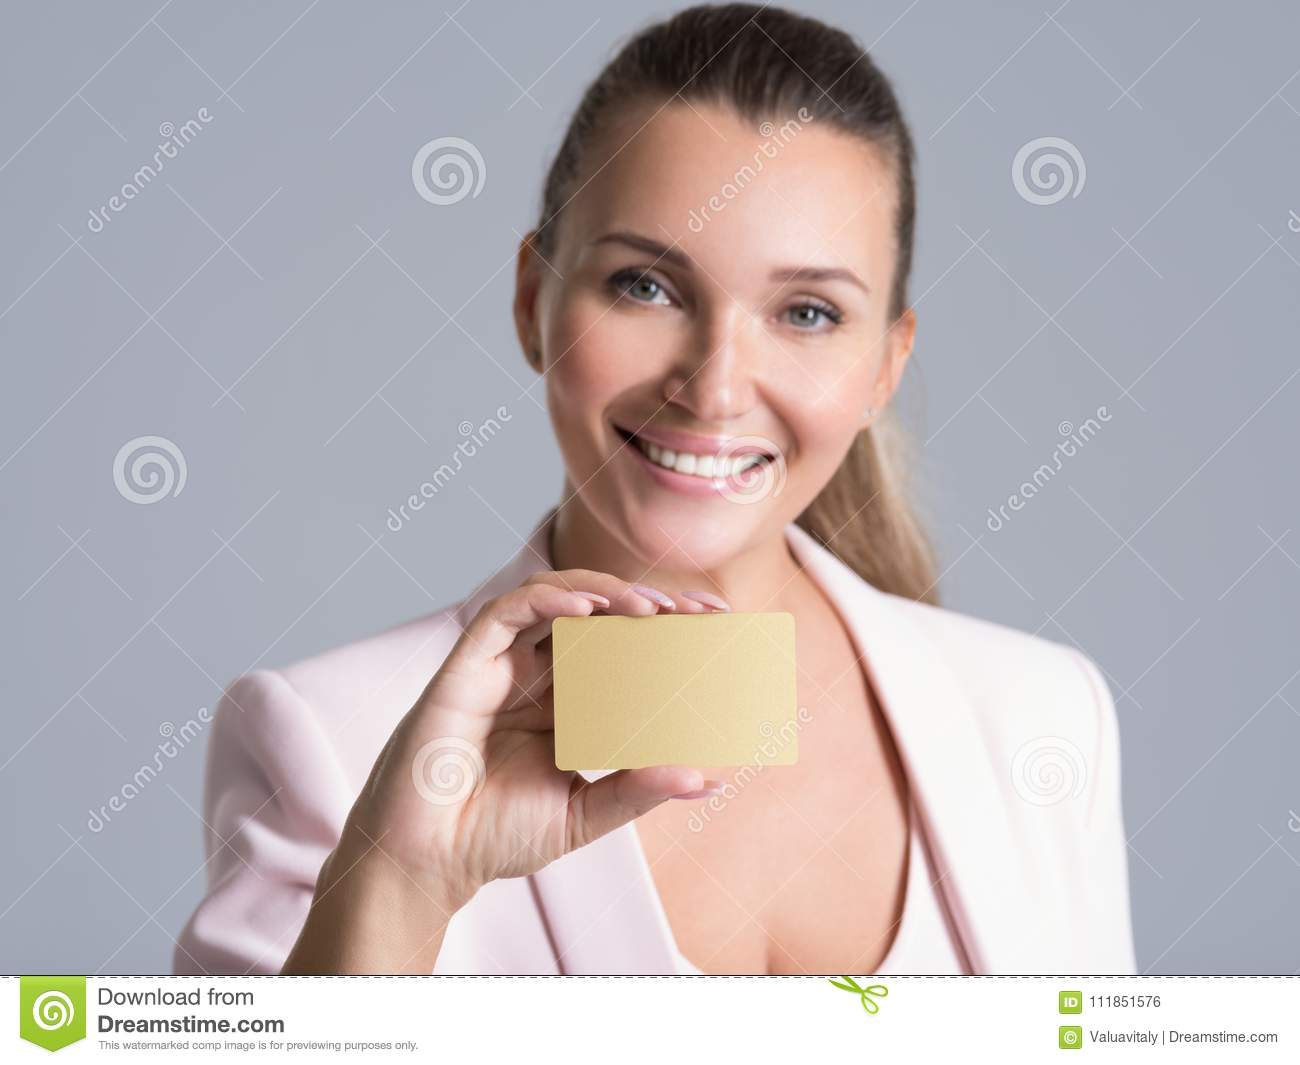 Business woman holding credit card against her face isolated